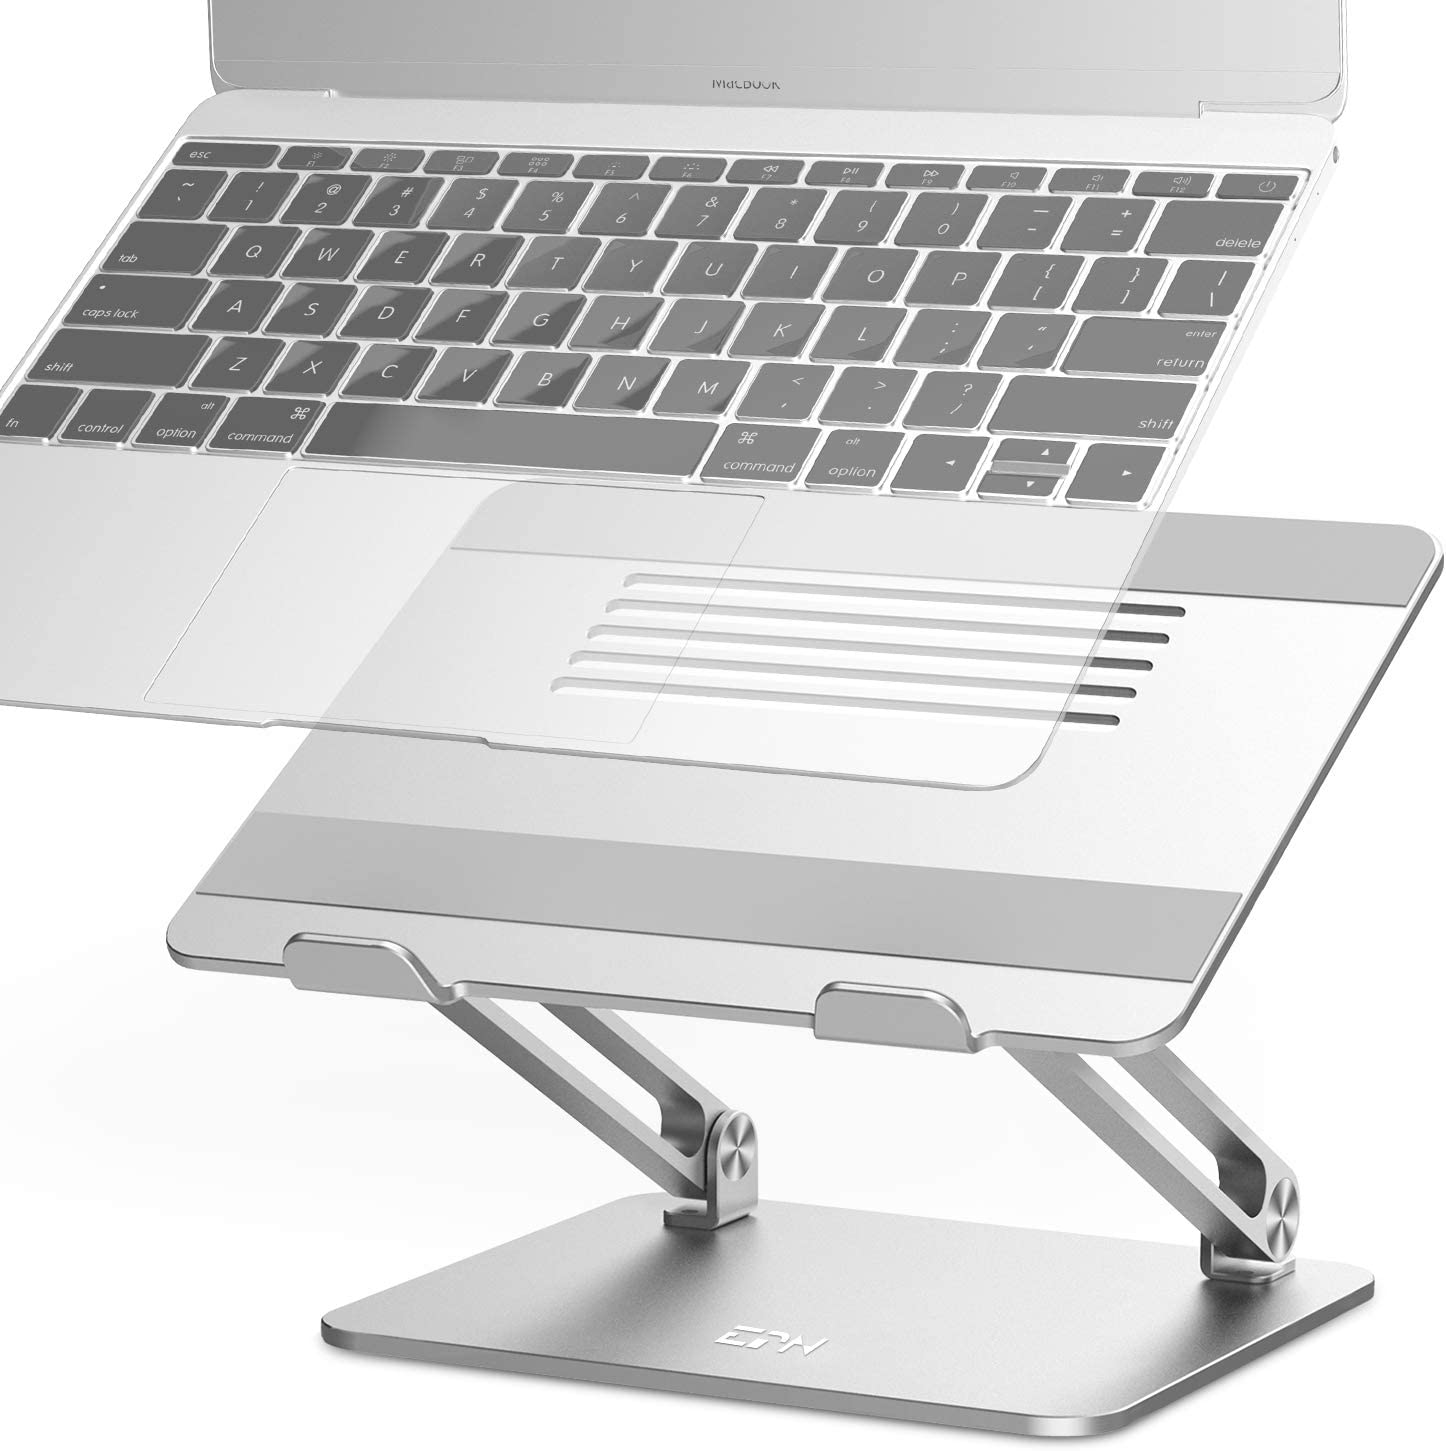 Adjustable Laptop Stand, EPN Laptop Riser with Heat-Vent to Elevate Laptop, Aluminum Notebook Holder Compatible for MacBook Pro/Air, Surface Laptop, Dell XPS, HP, Samsung, Lenovo, and Other 11-17.3 In